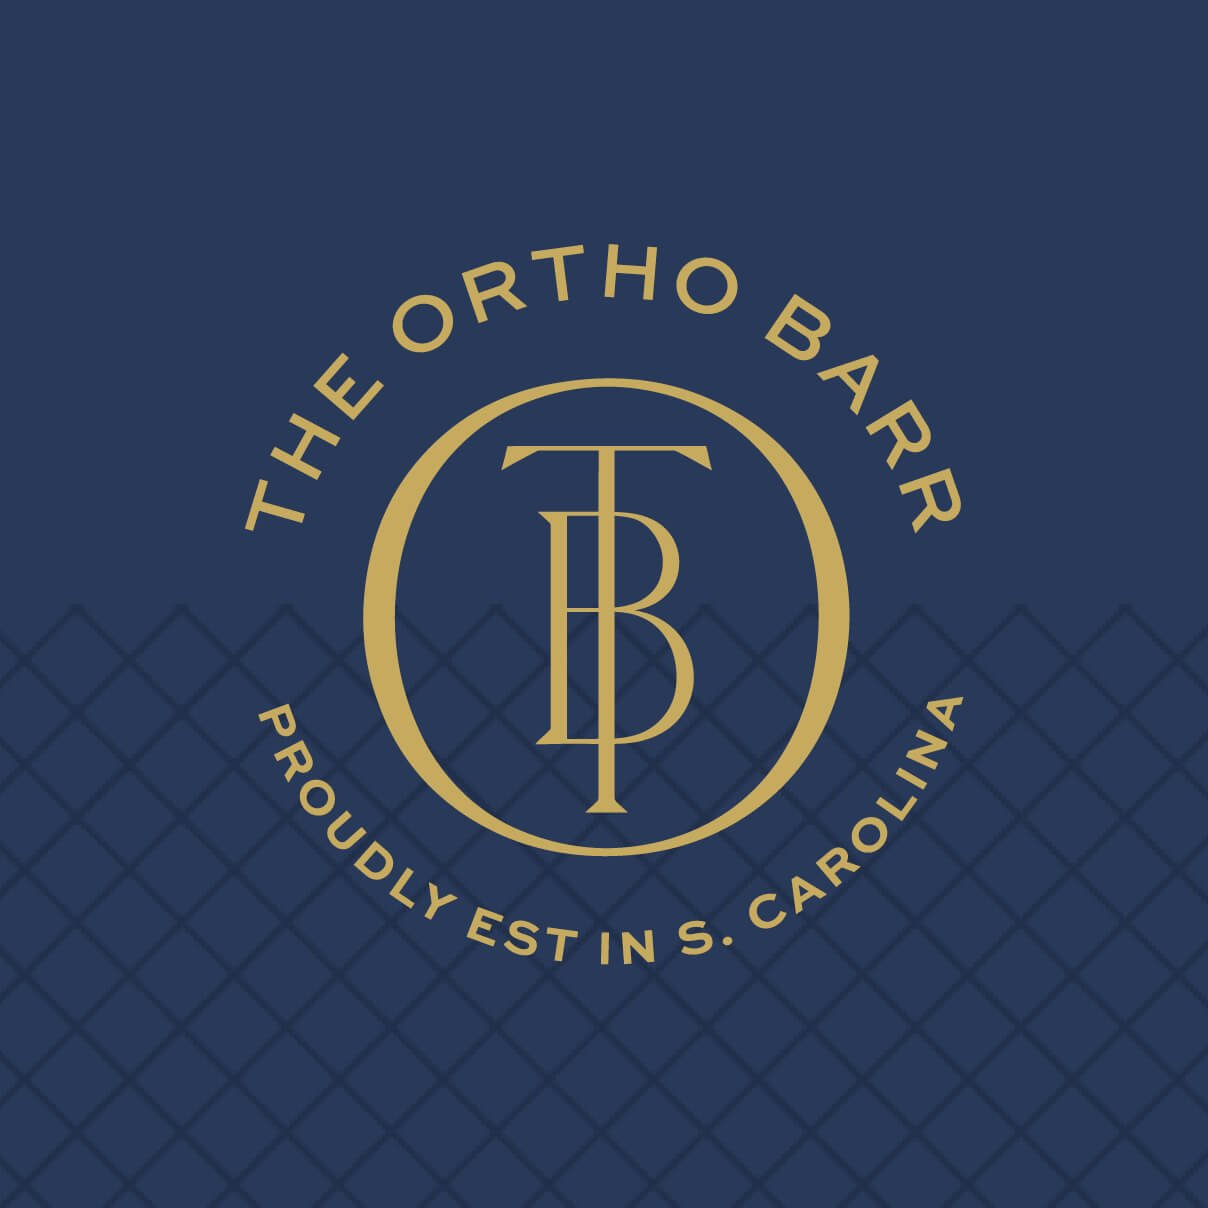 The Ortho Barr Logo by Test Monki